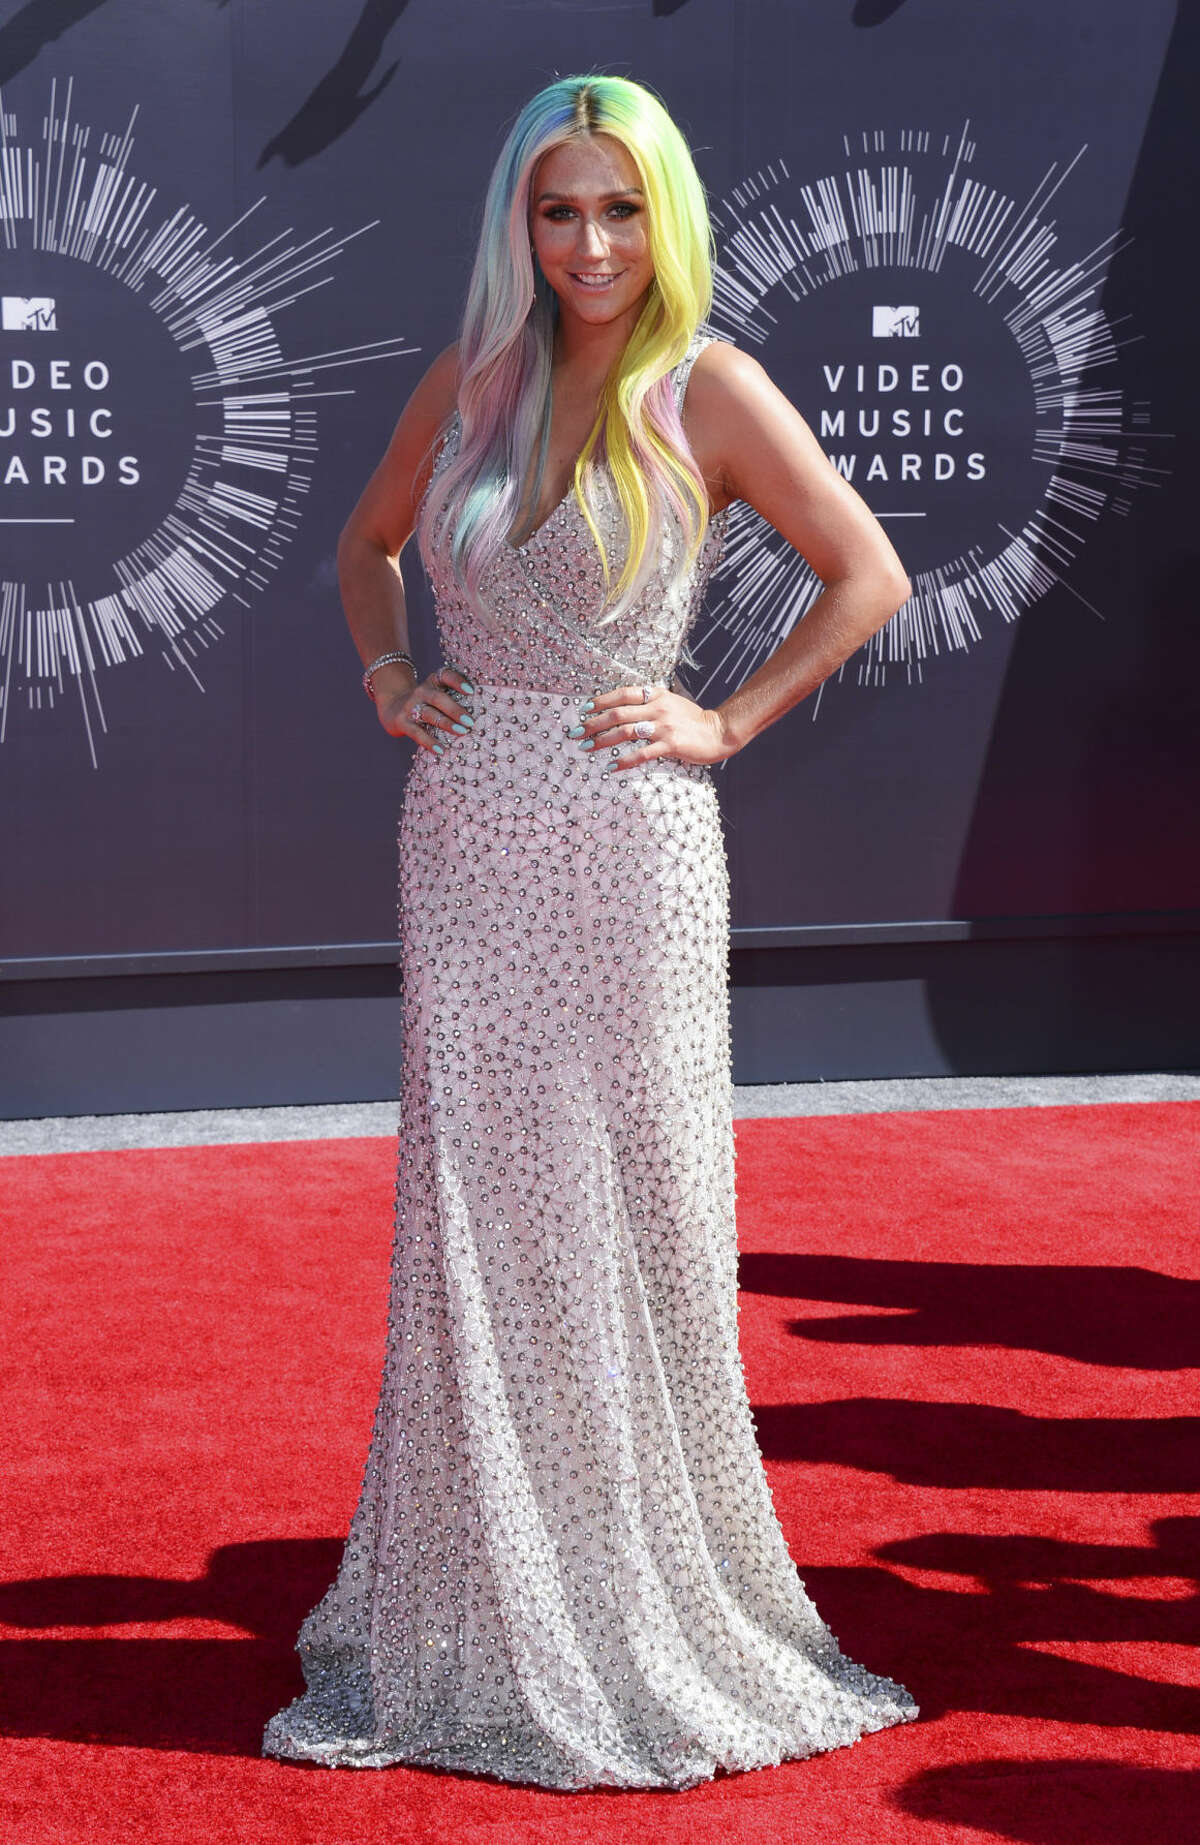 Kesha arrives at the MTV Video Music Awards at The Forum on Sunday, Aug. 24, 2014, in Inglewood, Calif. (Photo by Jordan Strauss/Invision/AP)